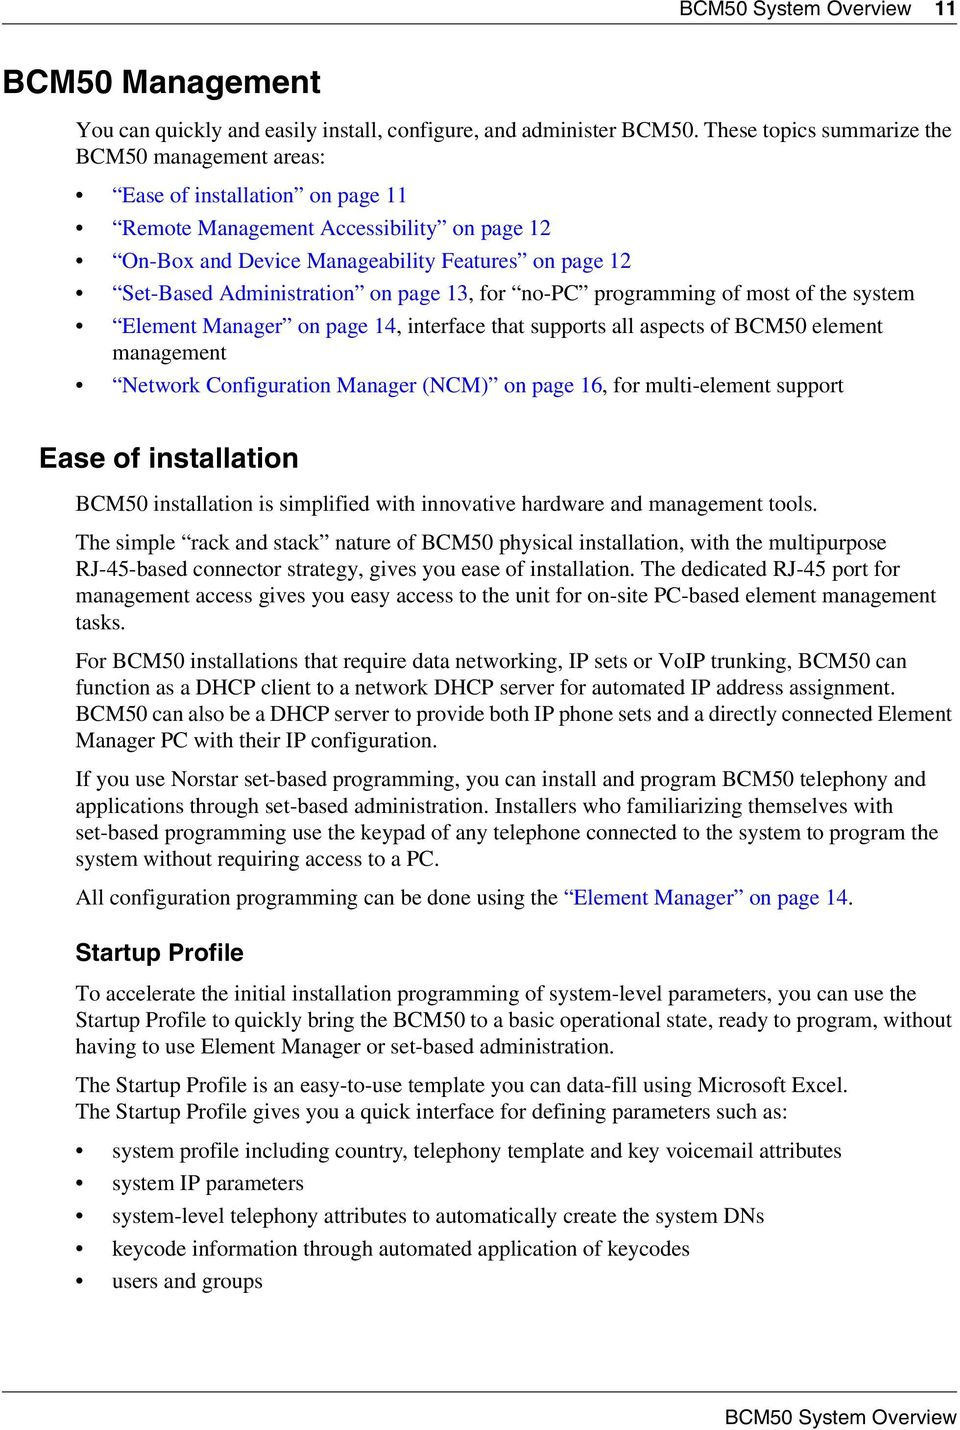 Administration on page 13, for no-pc programming of most of the system Element Manager on page 14, interface that supports all aspects of BCM50 element management Network Configuration Manager (NCM)